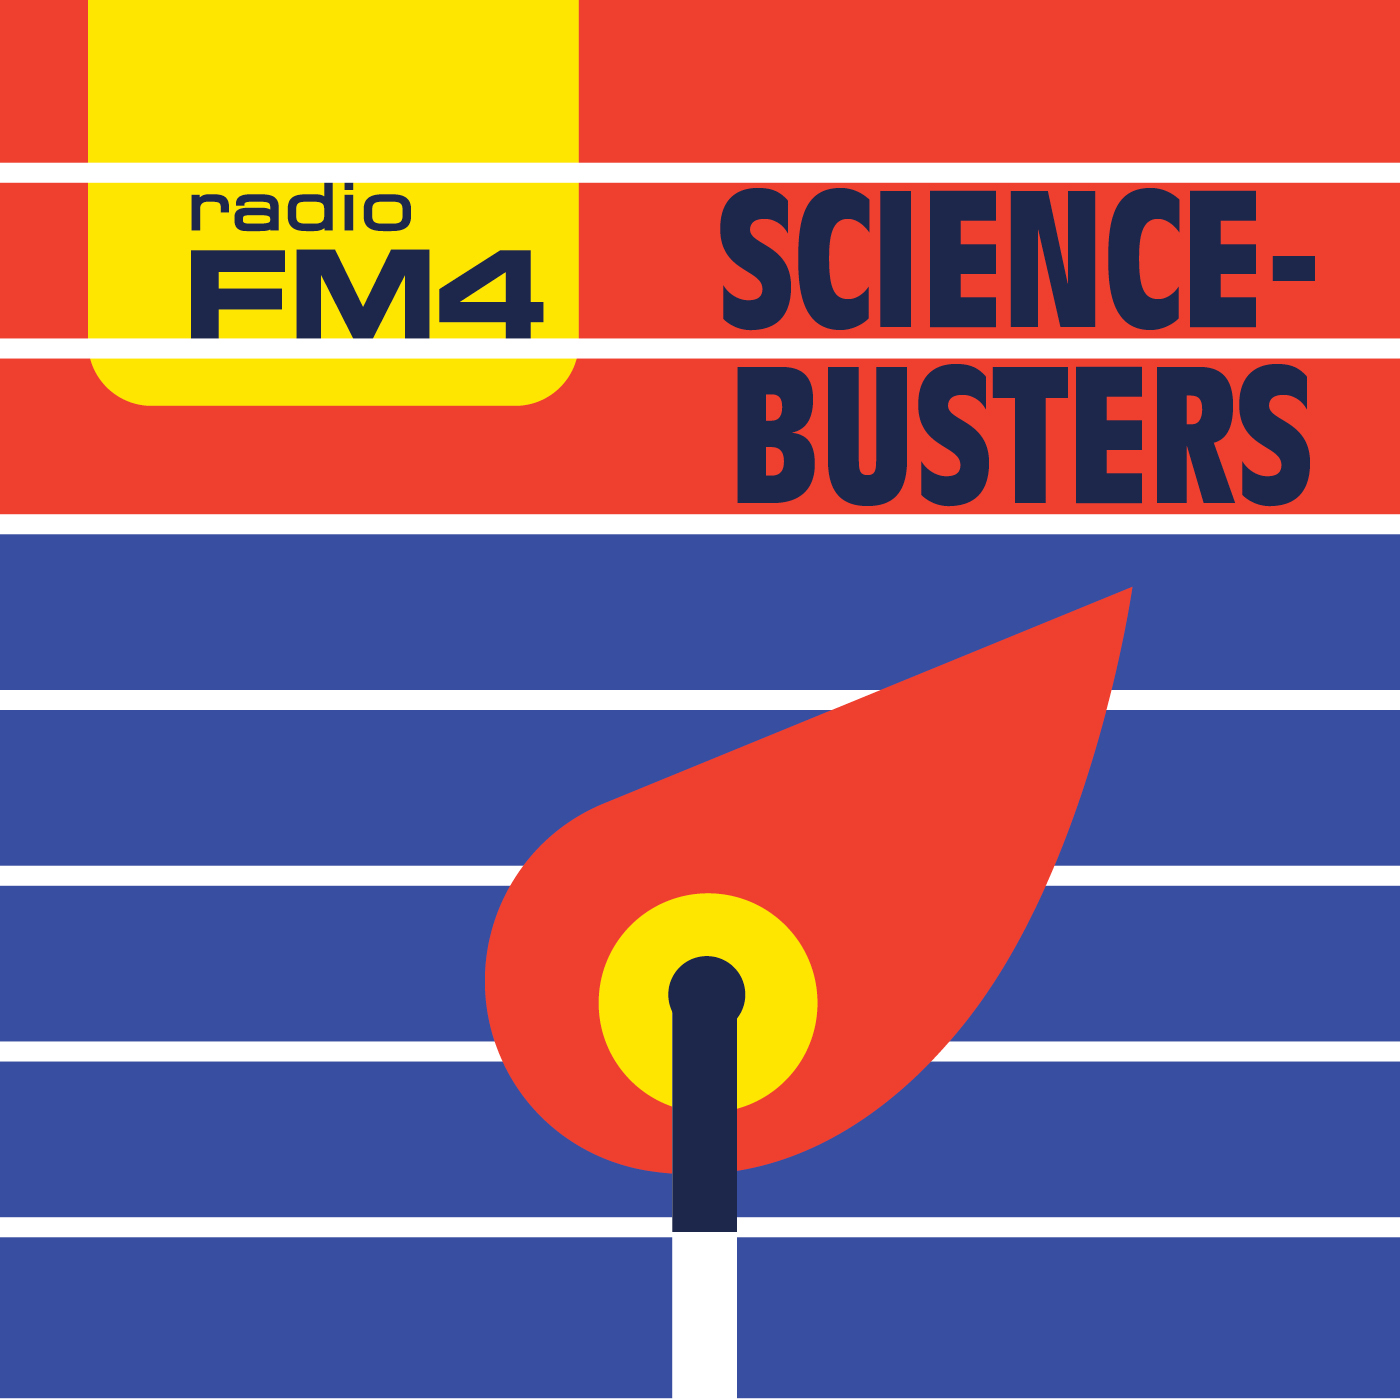 FM4 Science Busters logo